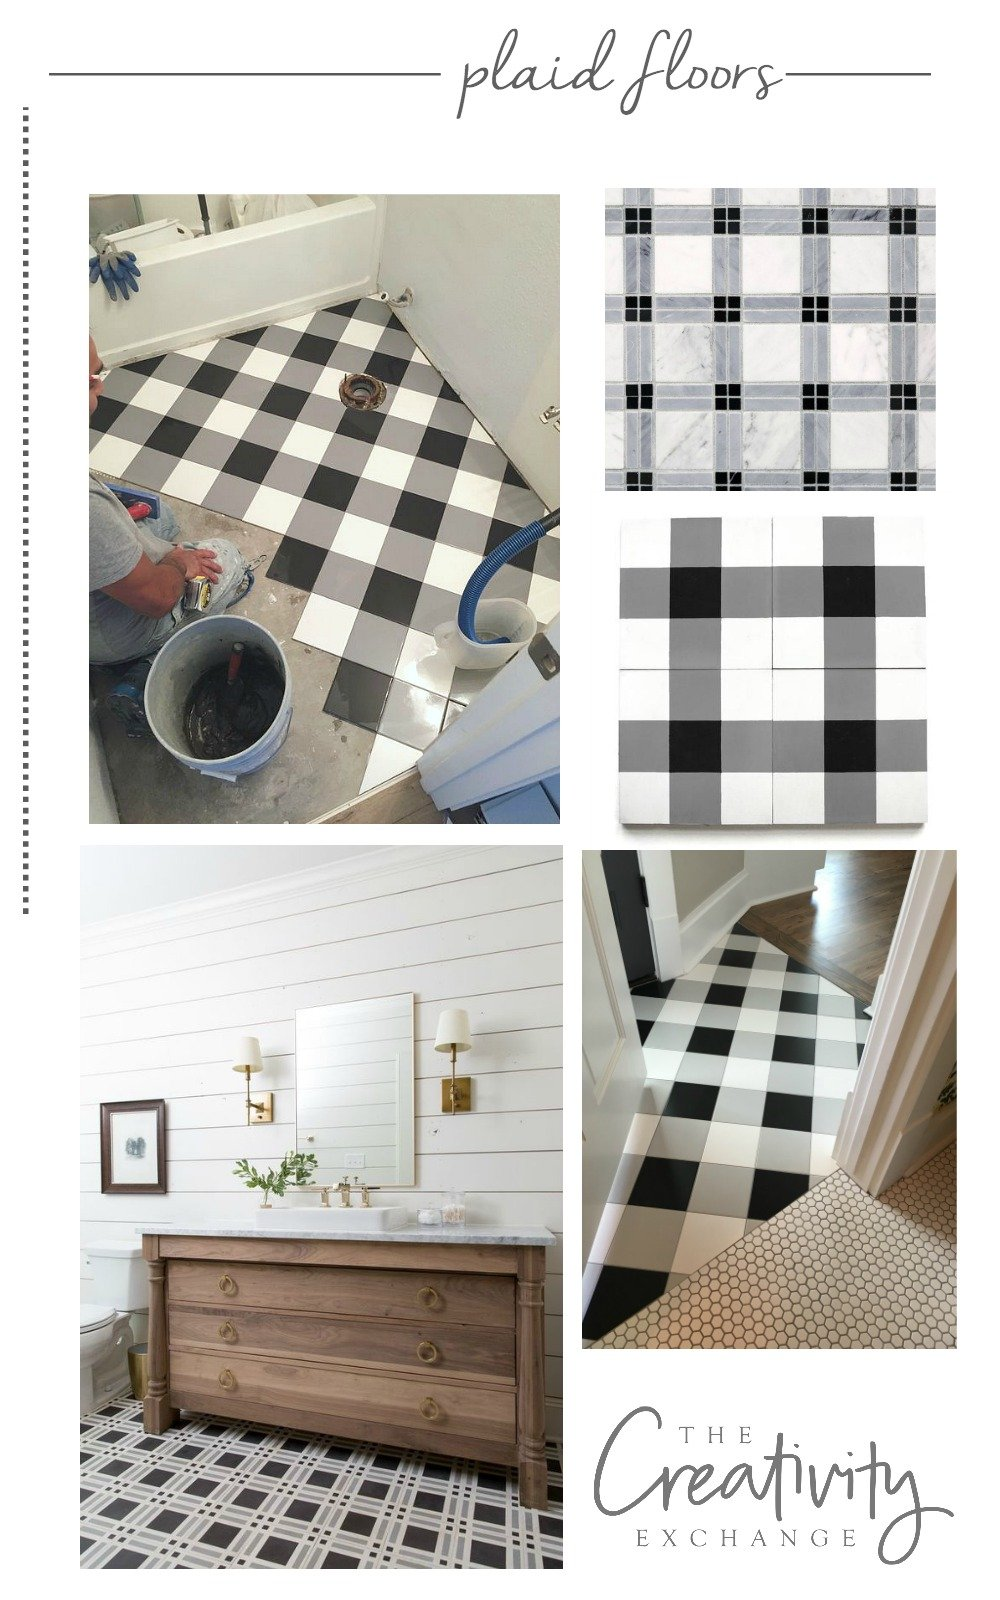 Laying a plaid floor using inexpensive options